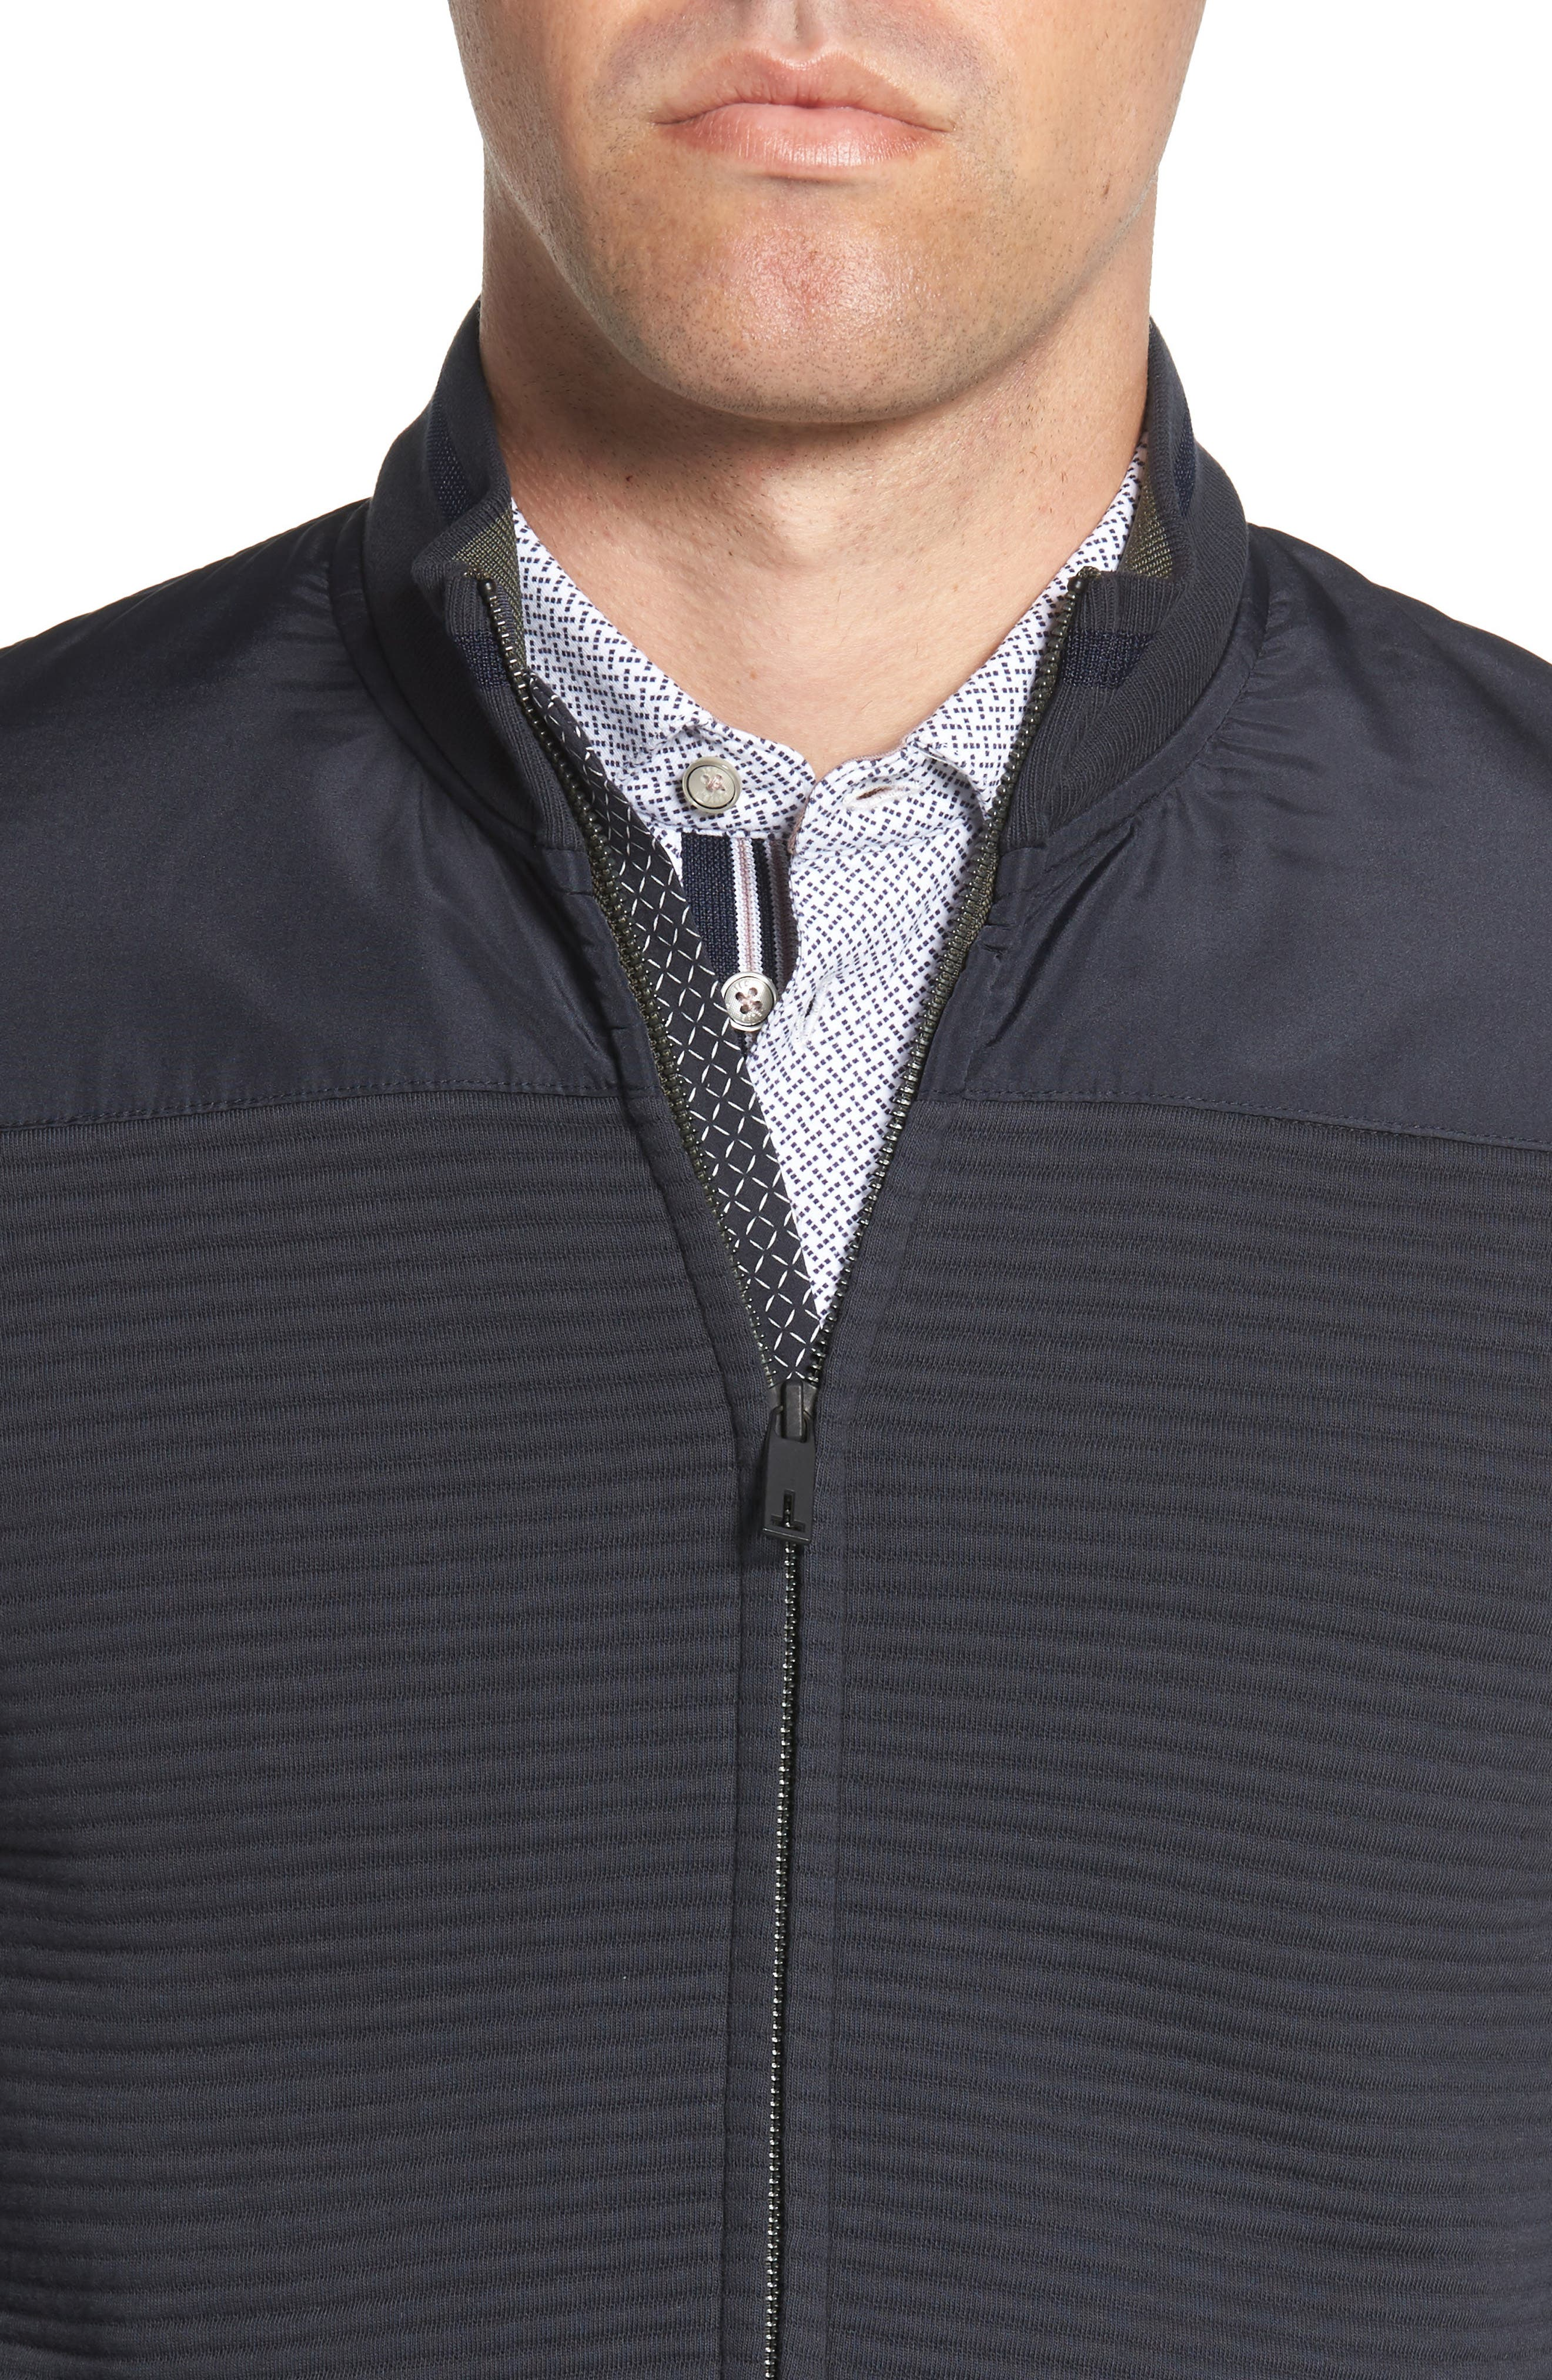 Sardin Quilted Jacket,                             Alternate thumbnail 4, color,                             NAVY